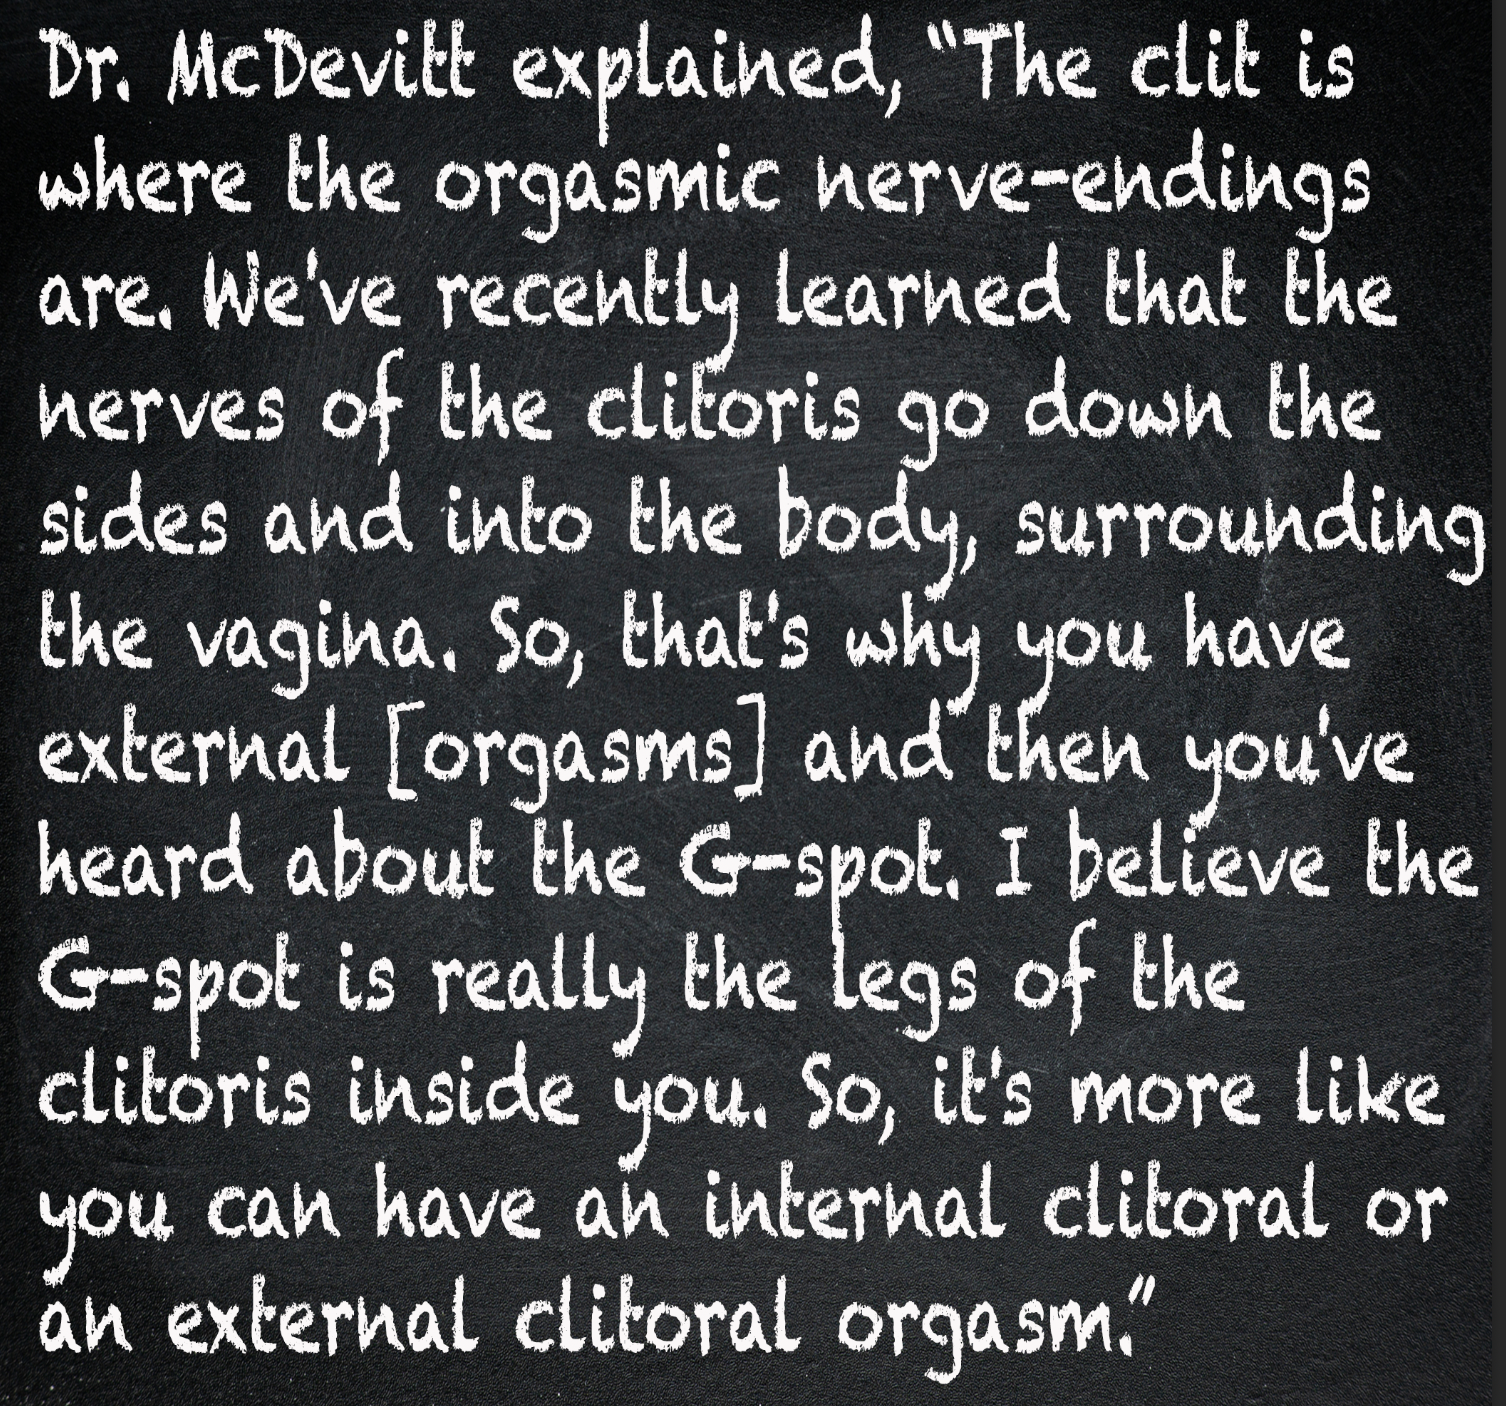 The nerves of the clitoris go down the sides and into the body, surrounding the vagina from the inside. So, that's why you have external [orgasms] and then you've heard about the G-spot